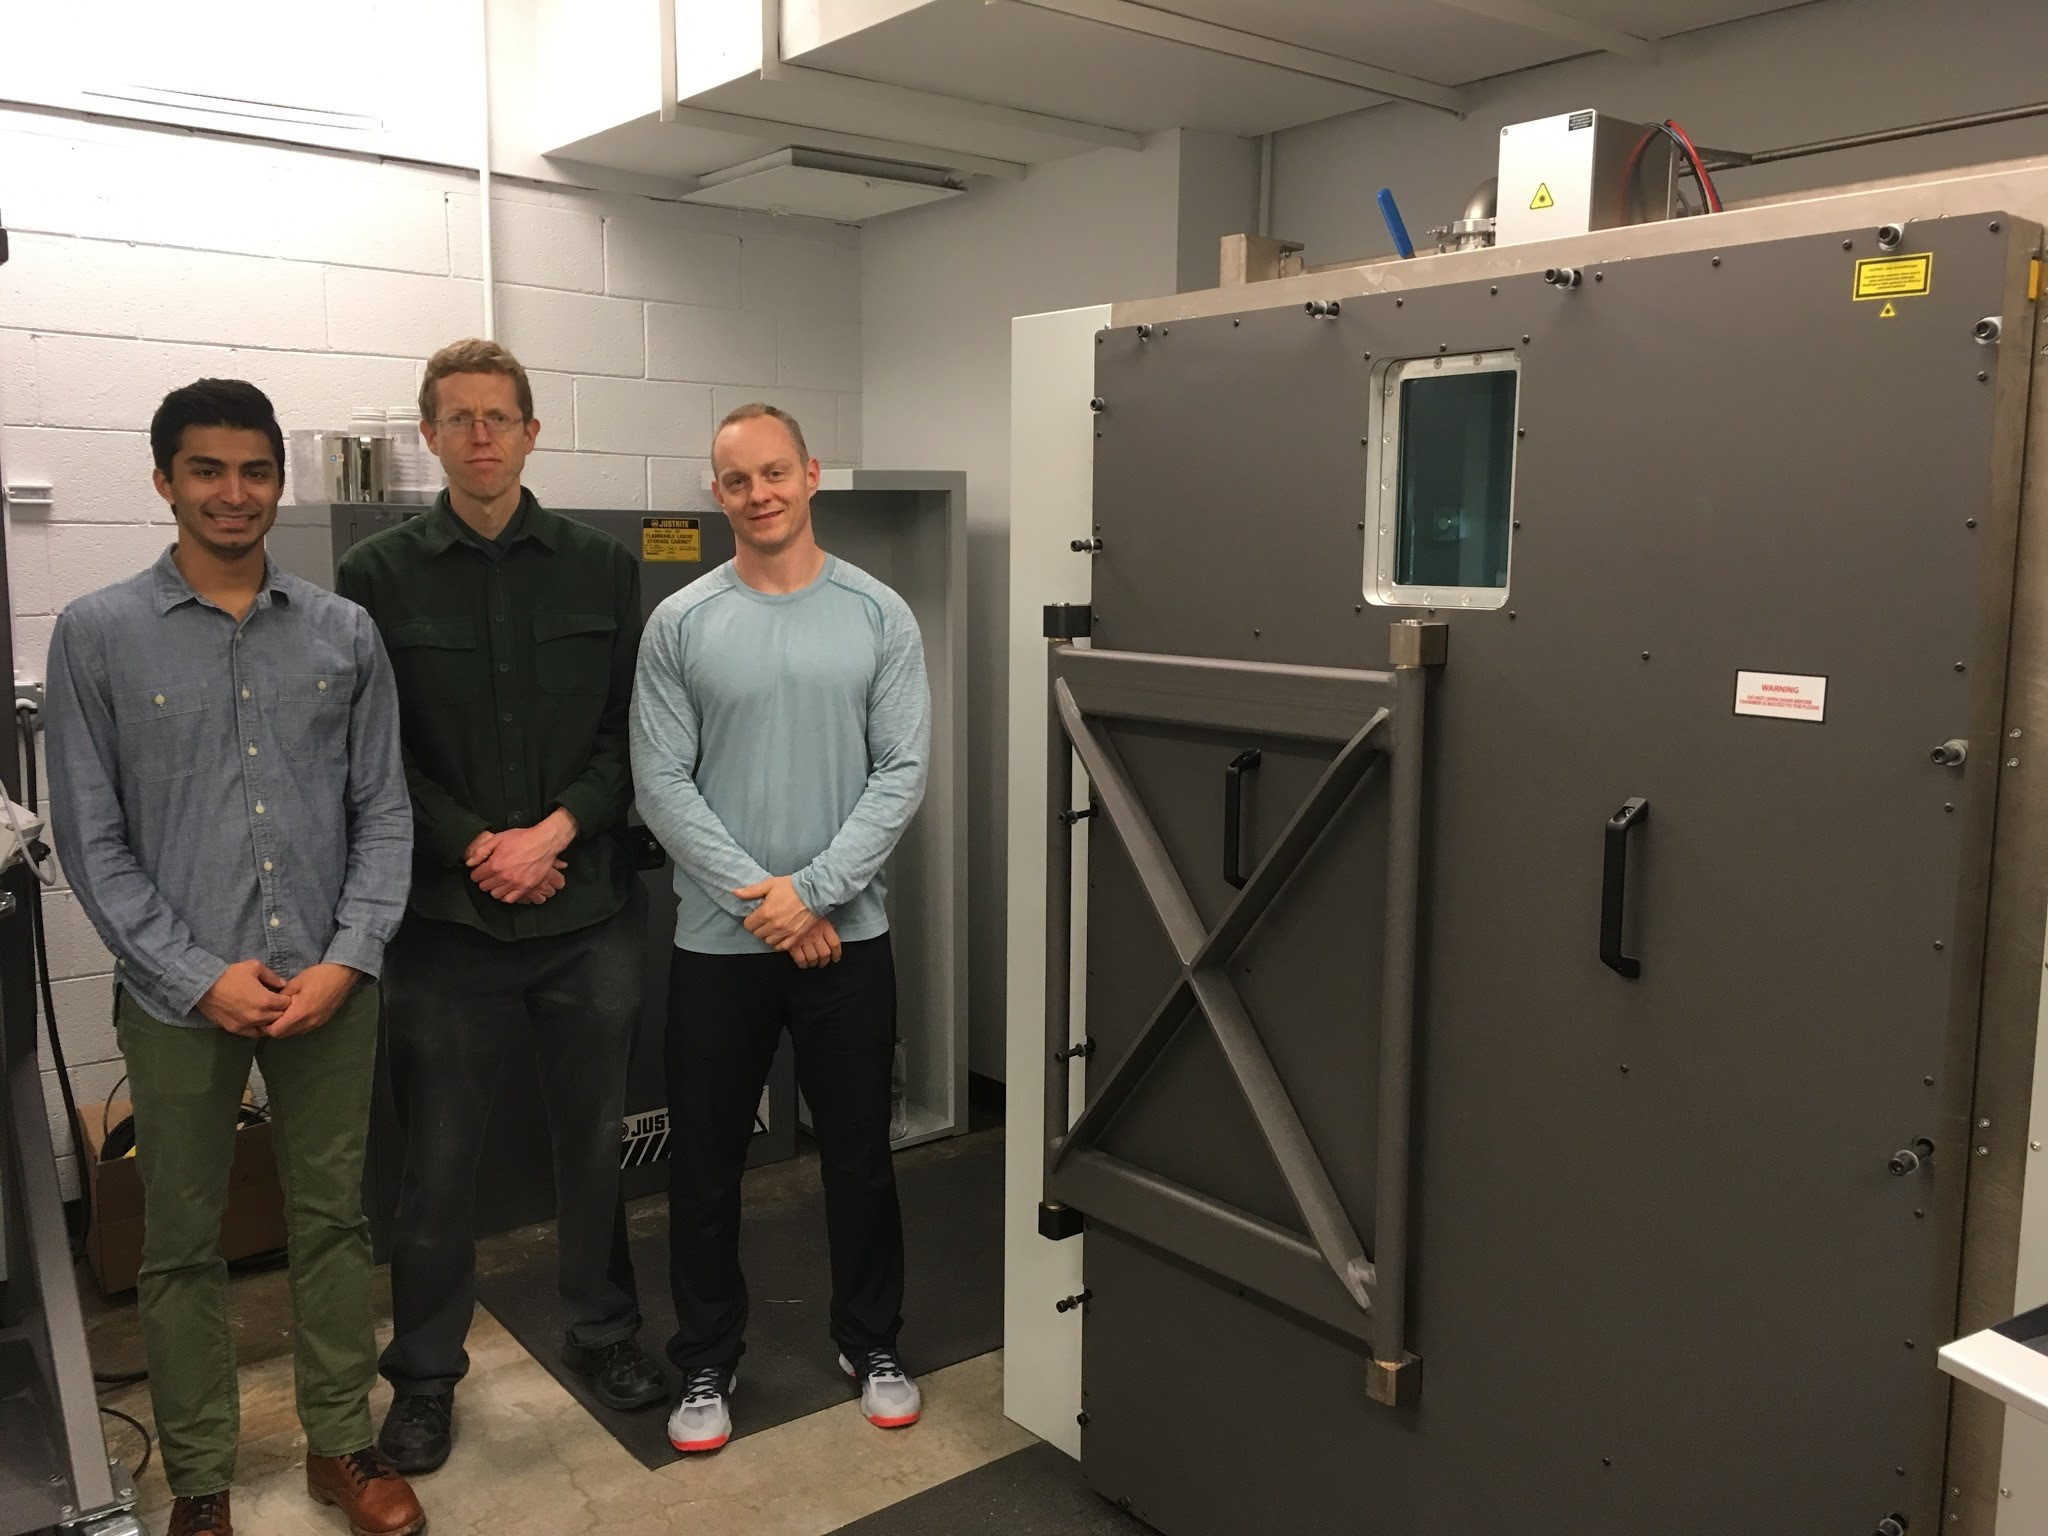 Kyle Dhindsa (Mechanical Engineering '17), Patrick McGuire (Senior Lab Administrator), and Professor Ken Gall stand beside the ProX DMP 320 Printer.